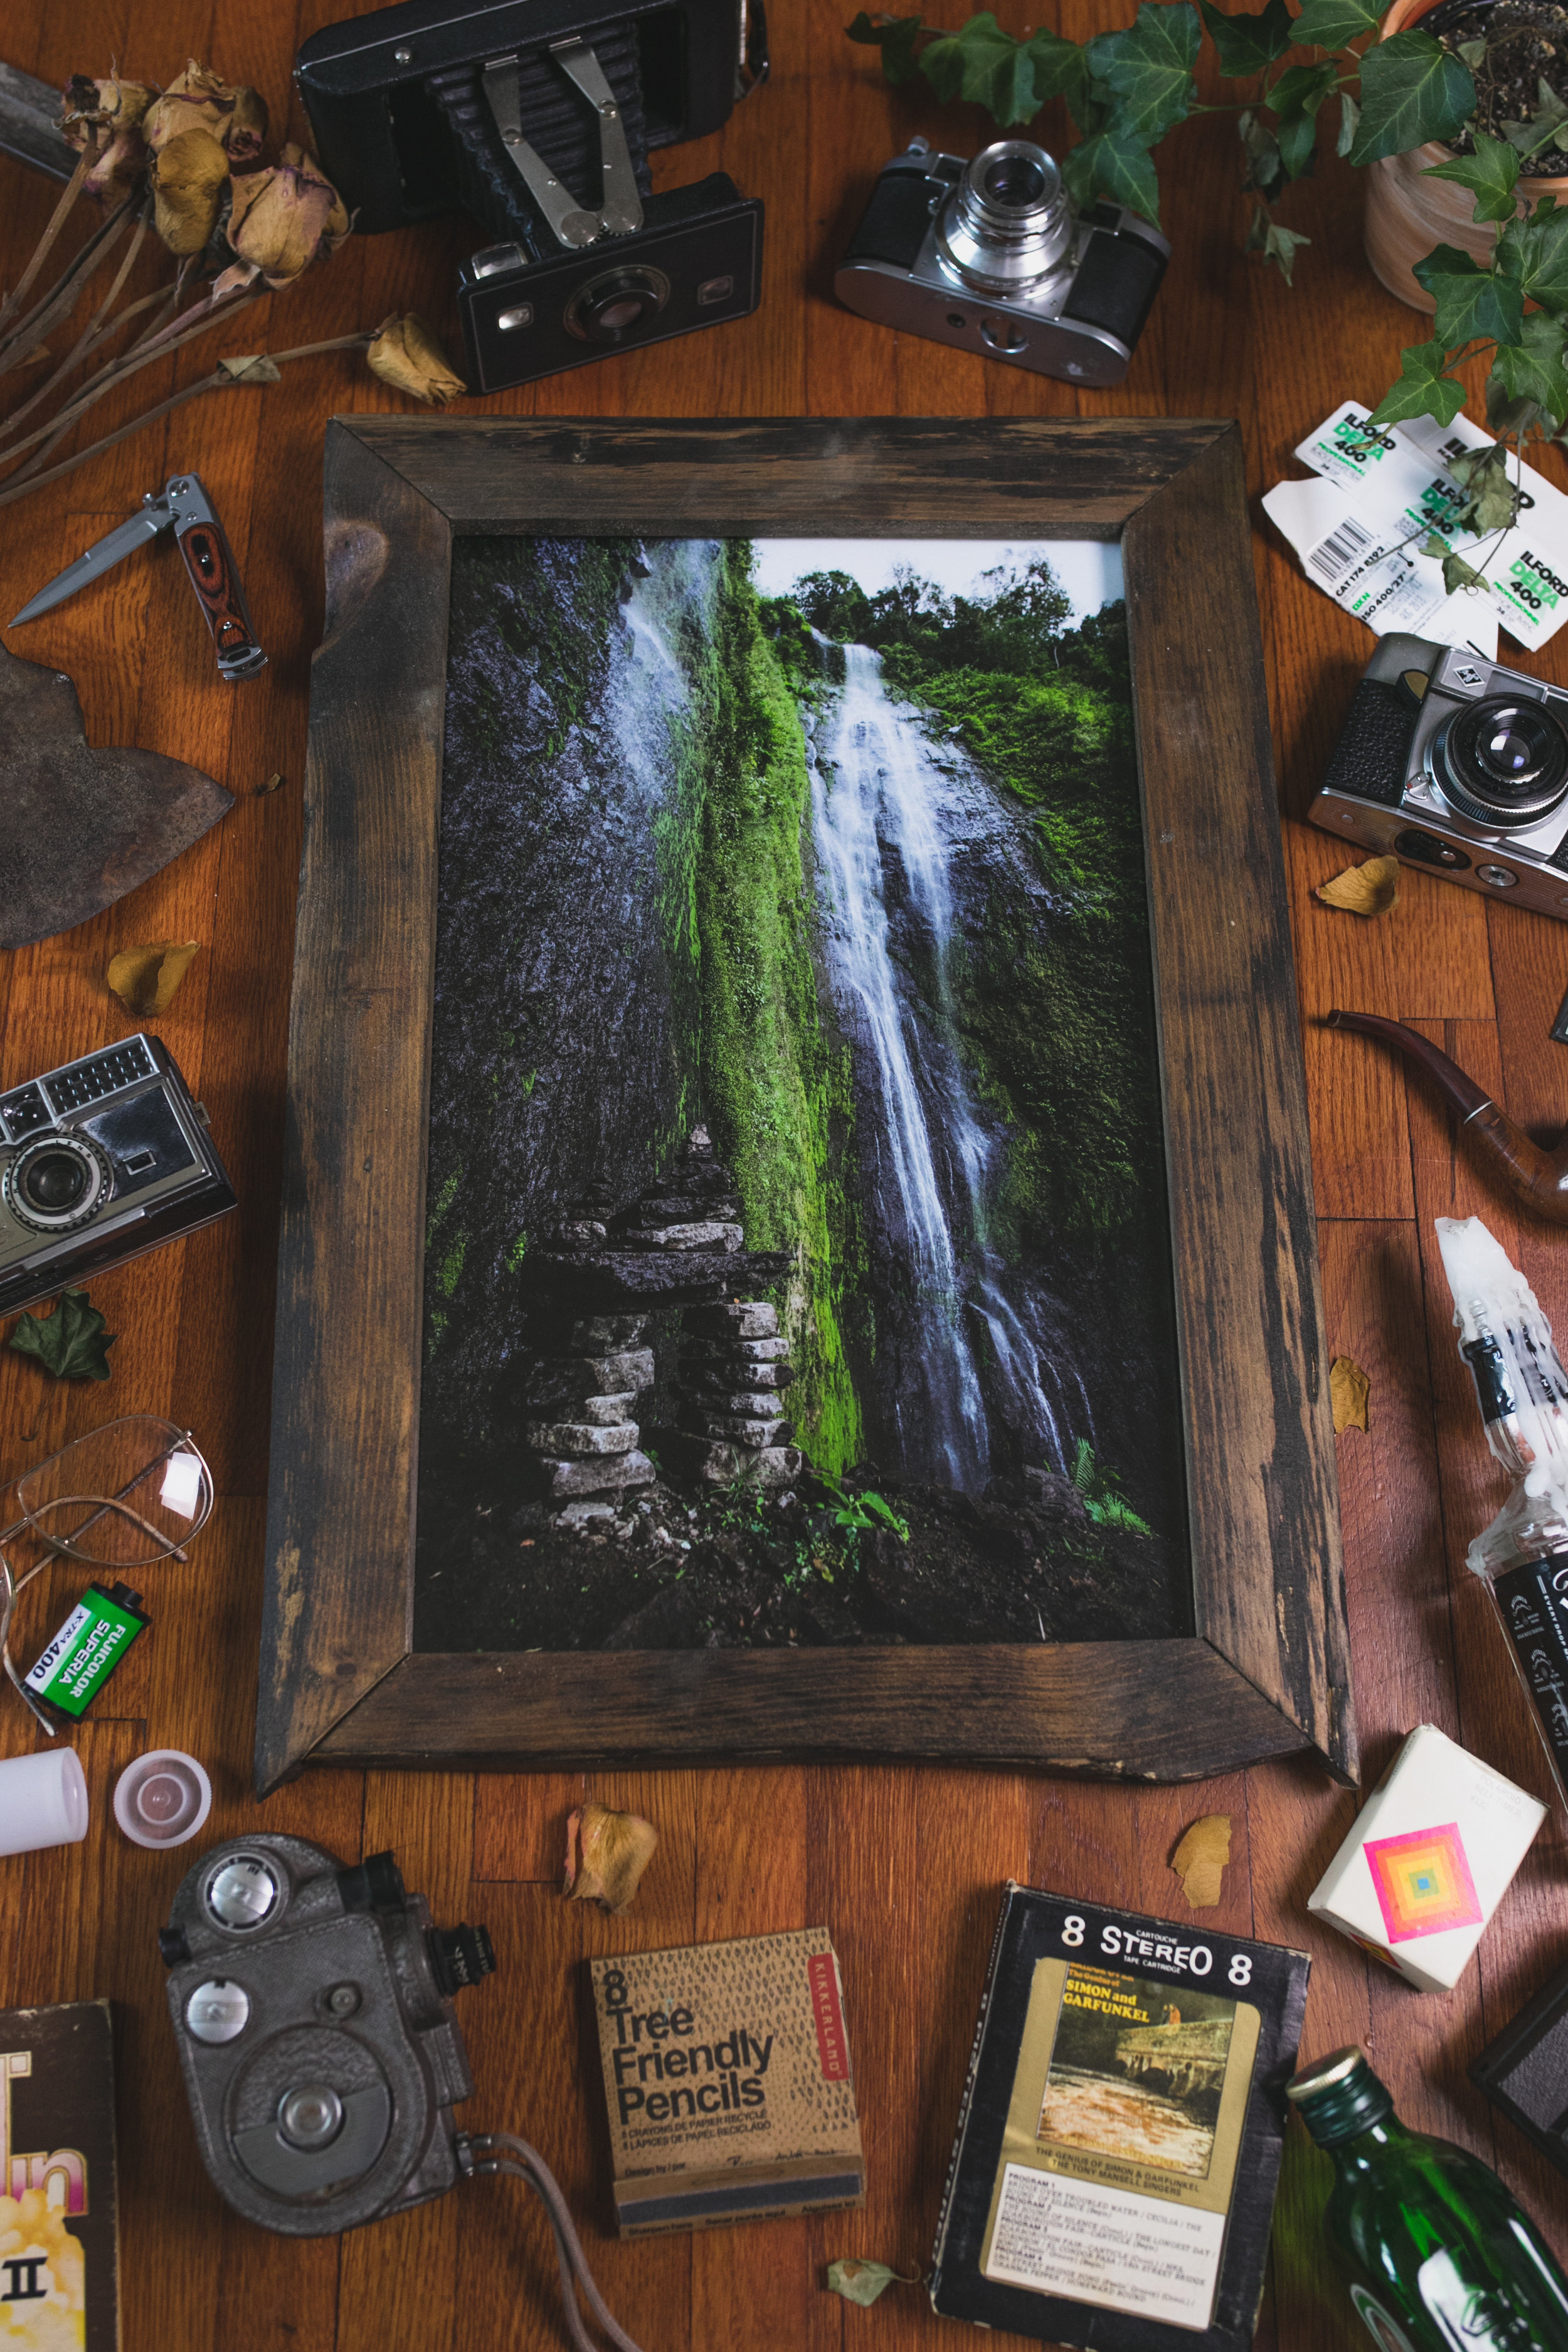 """I absolutely love my waterfall piece that I got from Anthony's art show. Everyday when I look at it I smile a huge smile!! Beautiful photos and frames  Anthony !"" - Jodie Brown"